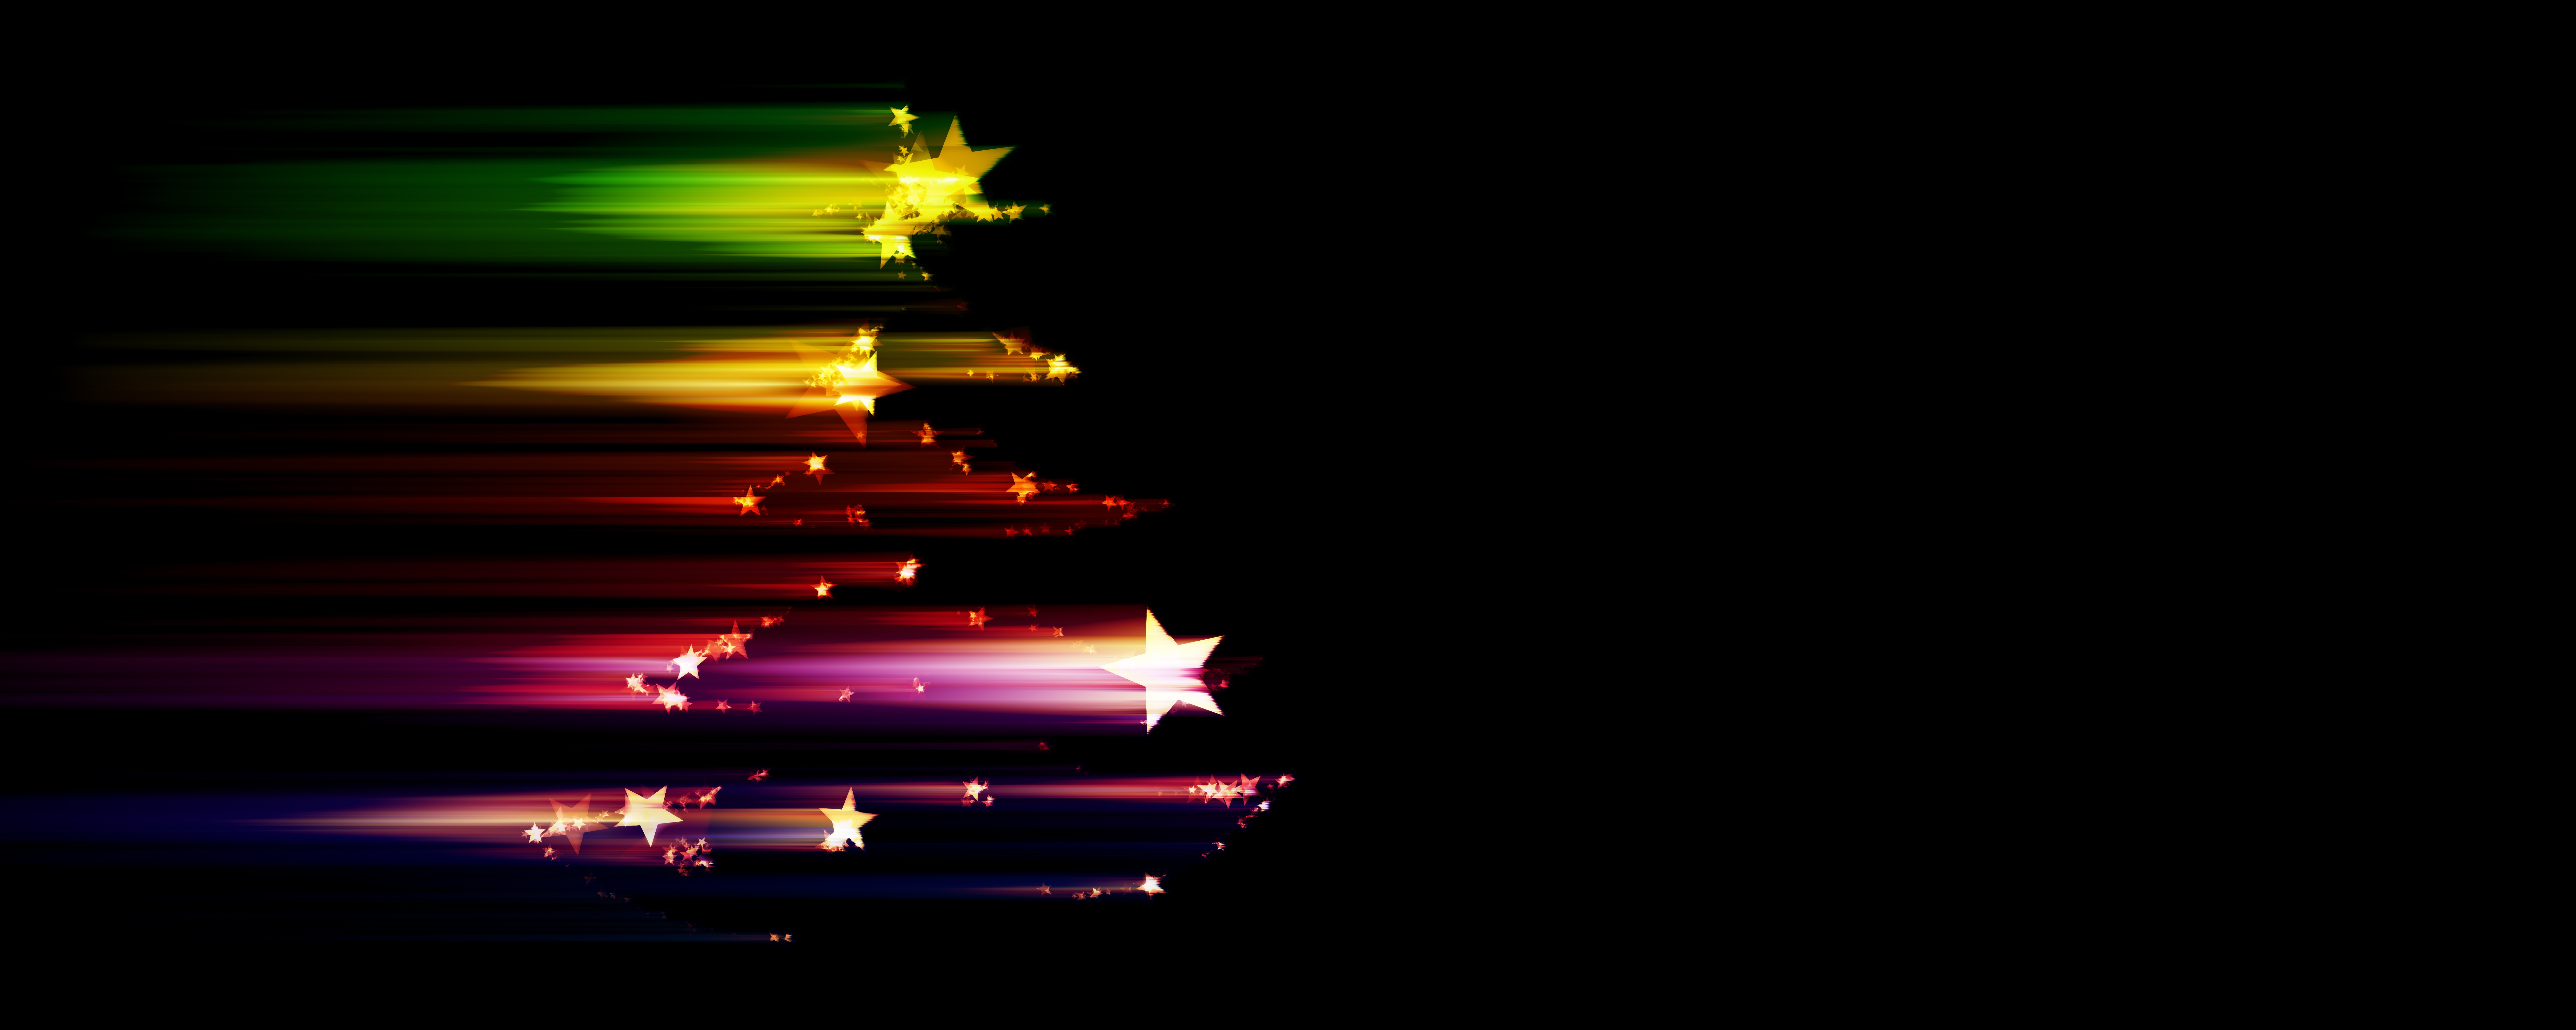 147414 Screensavers and Wallpapers Beams for phone. Download Abstract, Stars, Shine, Beams, Rays, Multicolored, Motley, Brilliance pictures for free